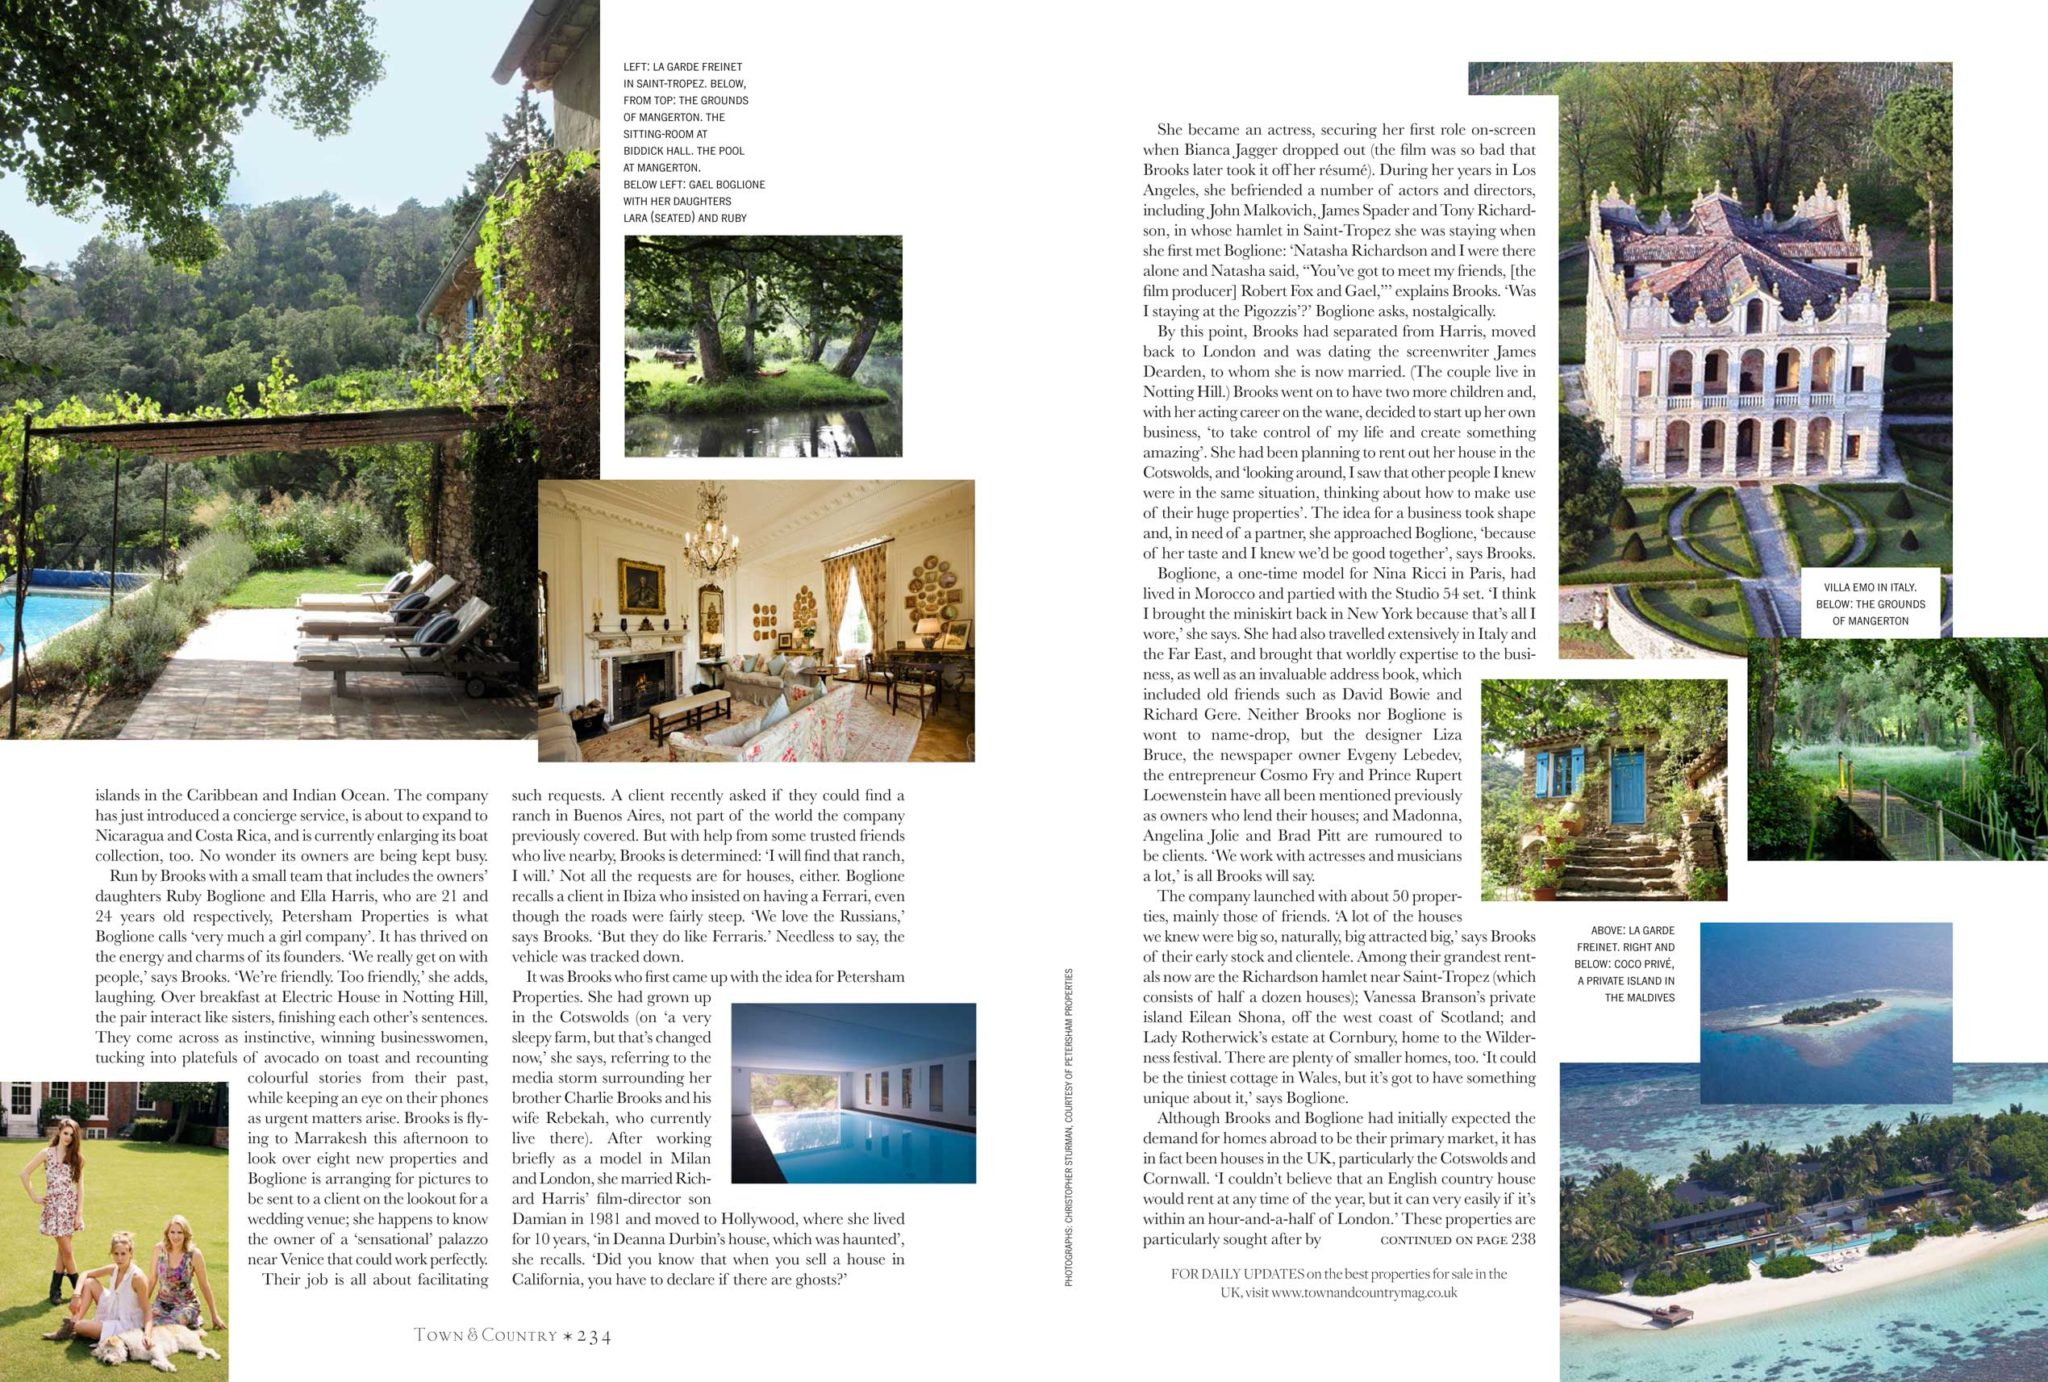 Town-and-country-feature-page-3-4